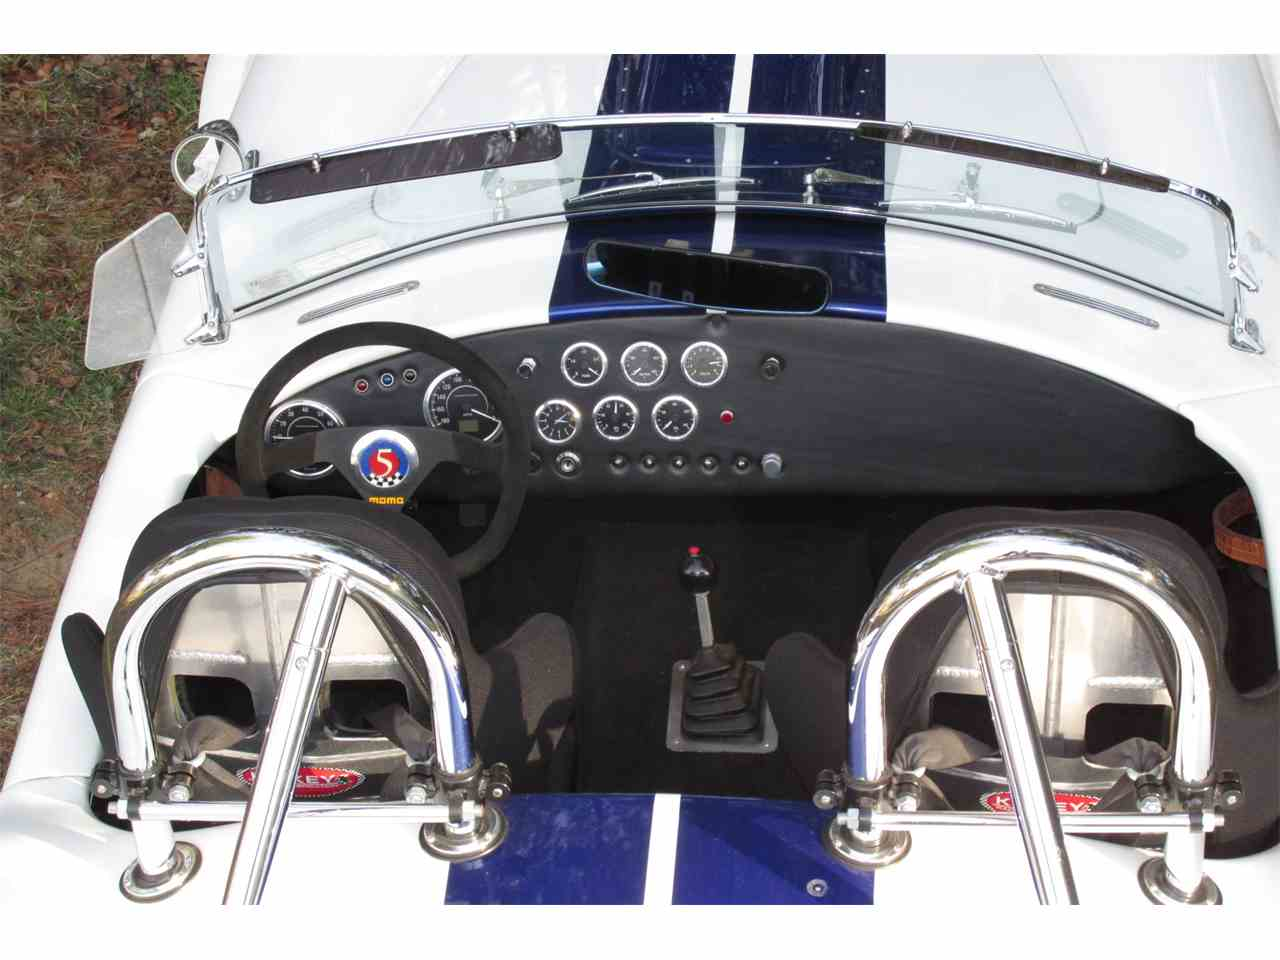 Large Picture of Classic 1965 Shelby Cobra Replica - $49,000.00 Offered by a Private Seller - N693